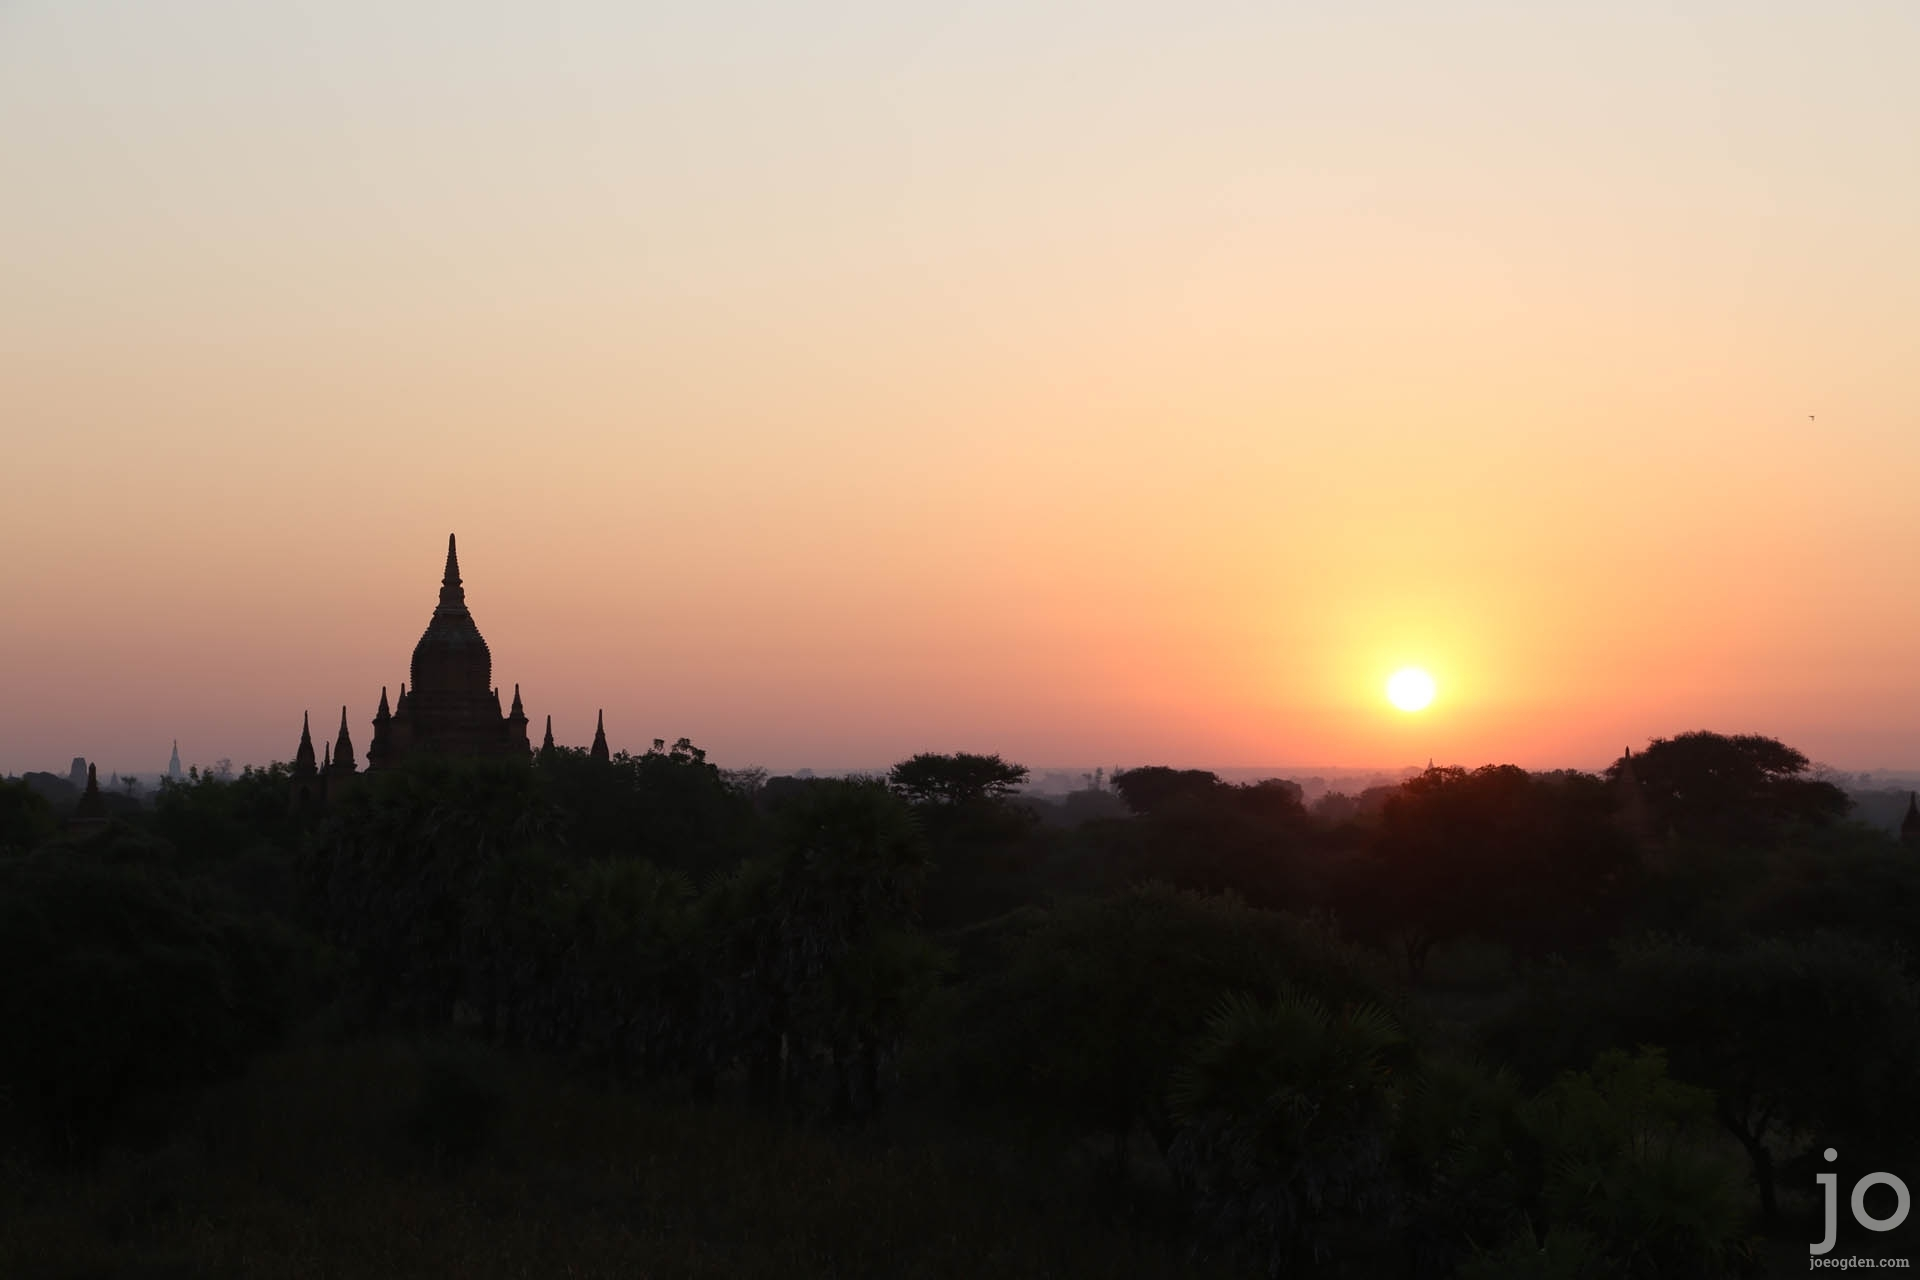 Sunrise over the temples in Bagan, Myanmar